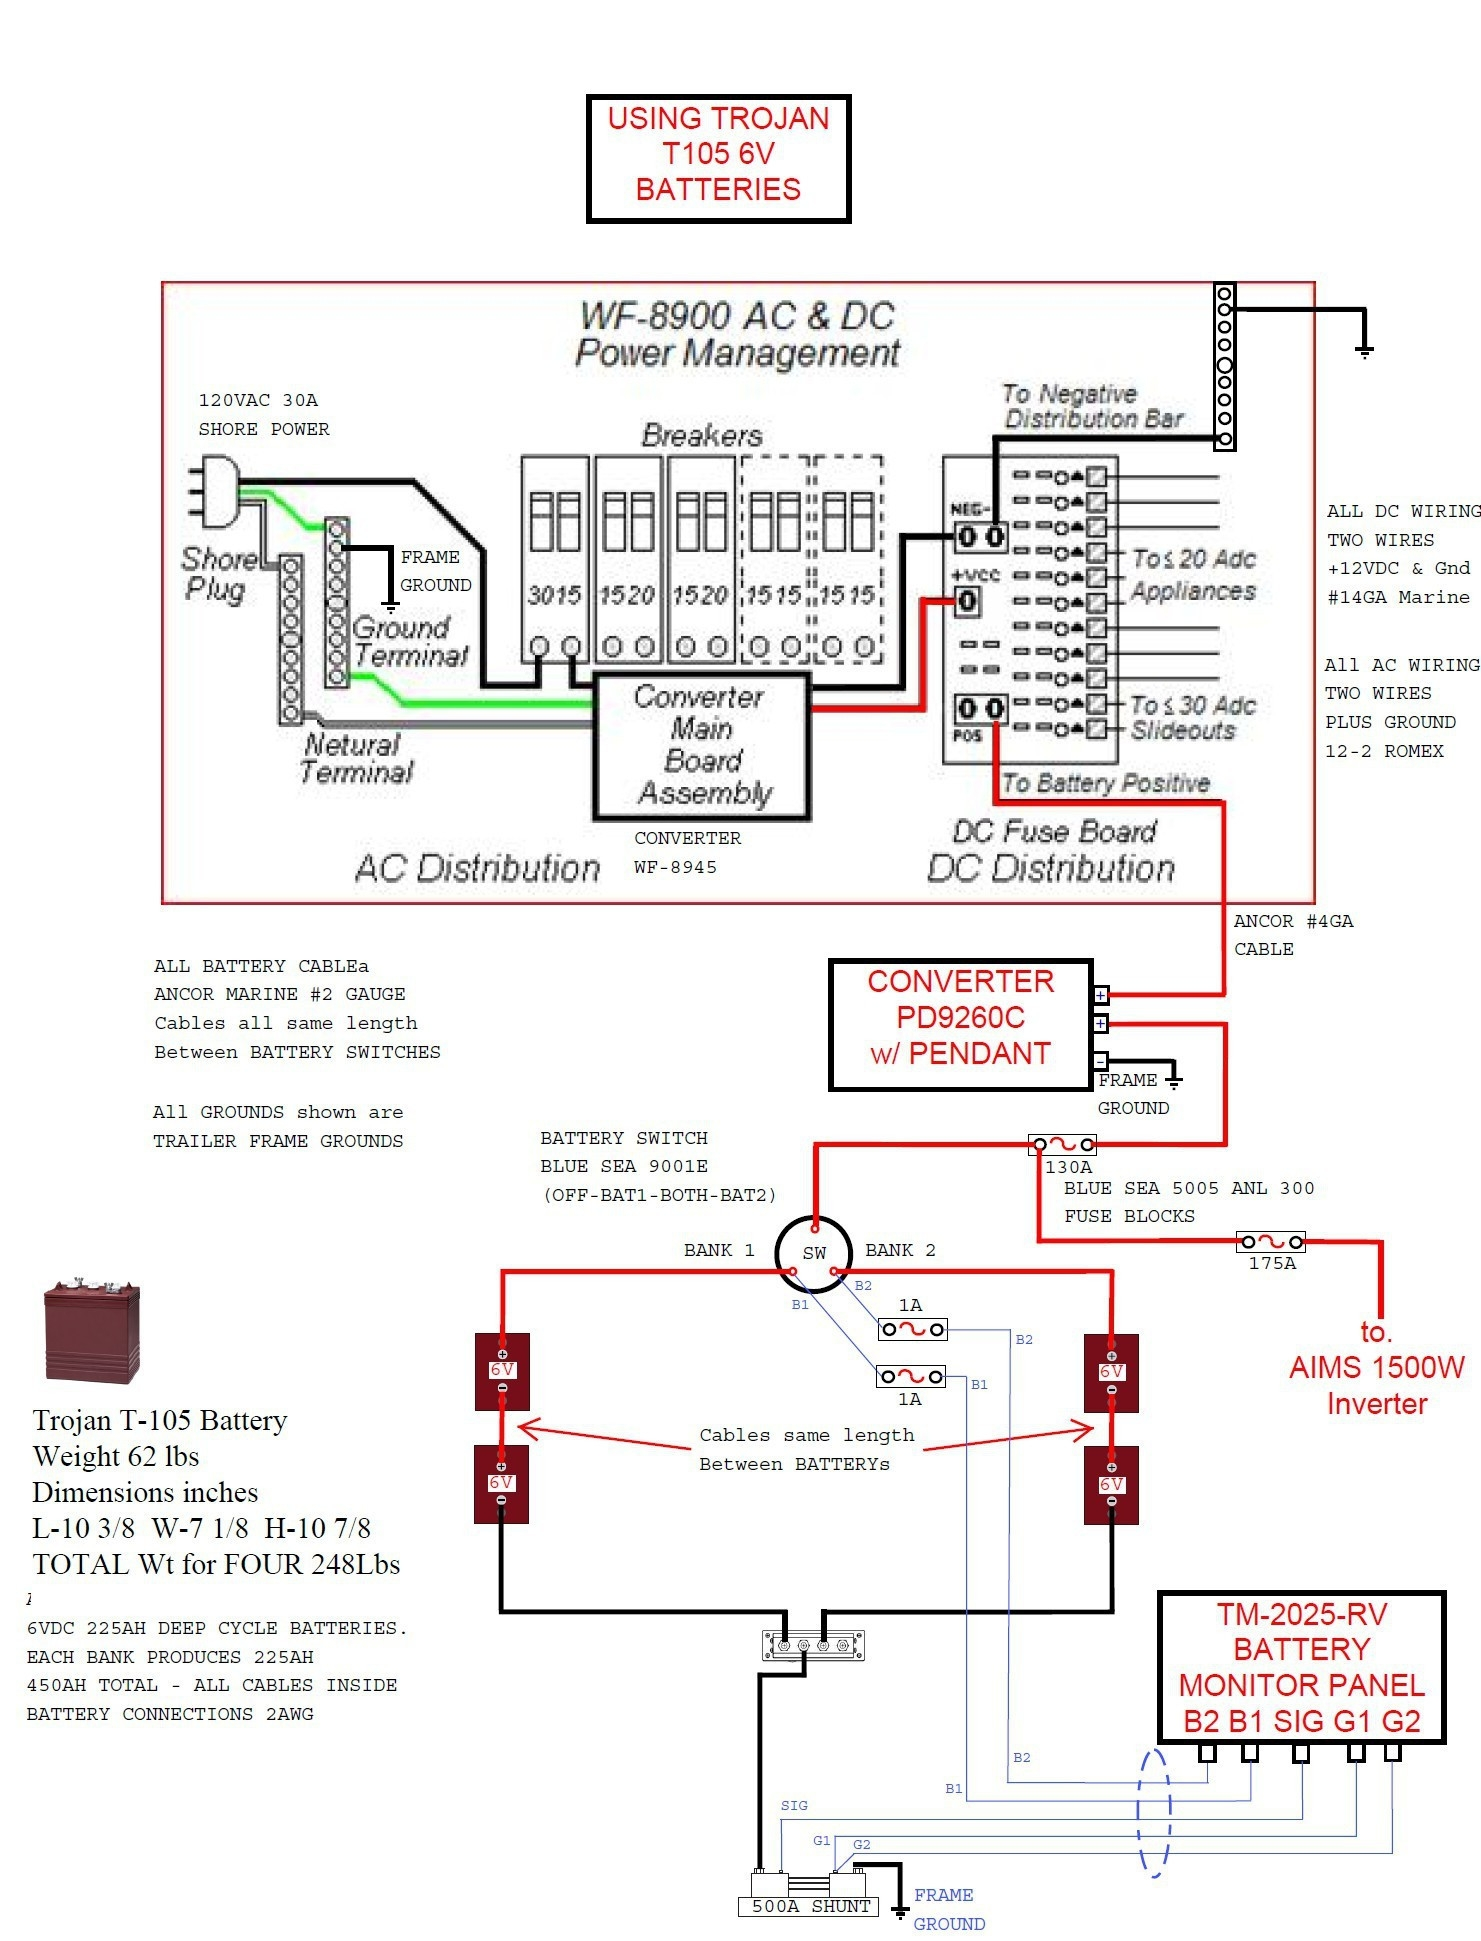 keystone rv wiring diagram Collection-Wiring Diagram Keystone Cougar Print Wiring Diagram for Keystone Laredo Inspirationa Luxury Montana 15-e